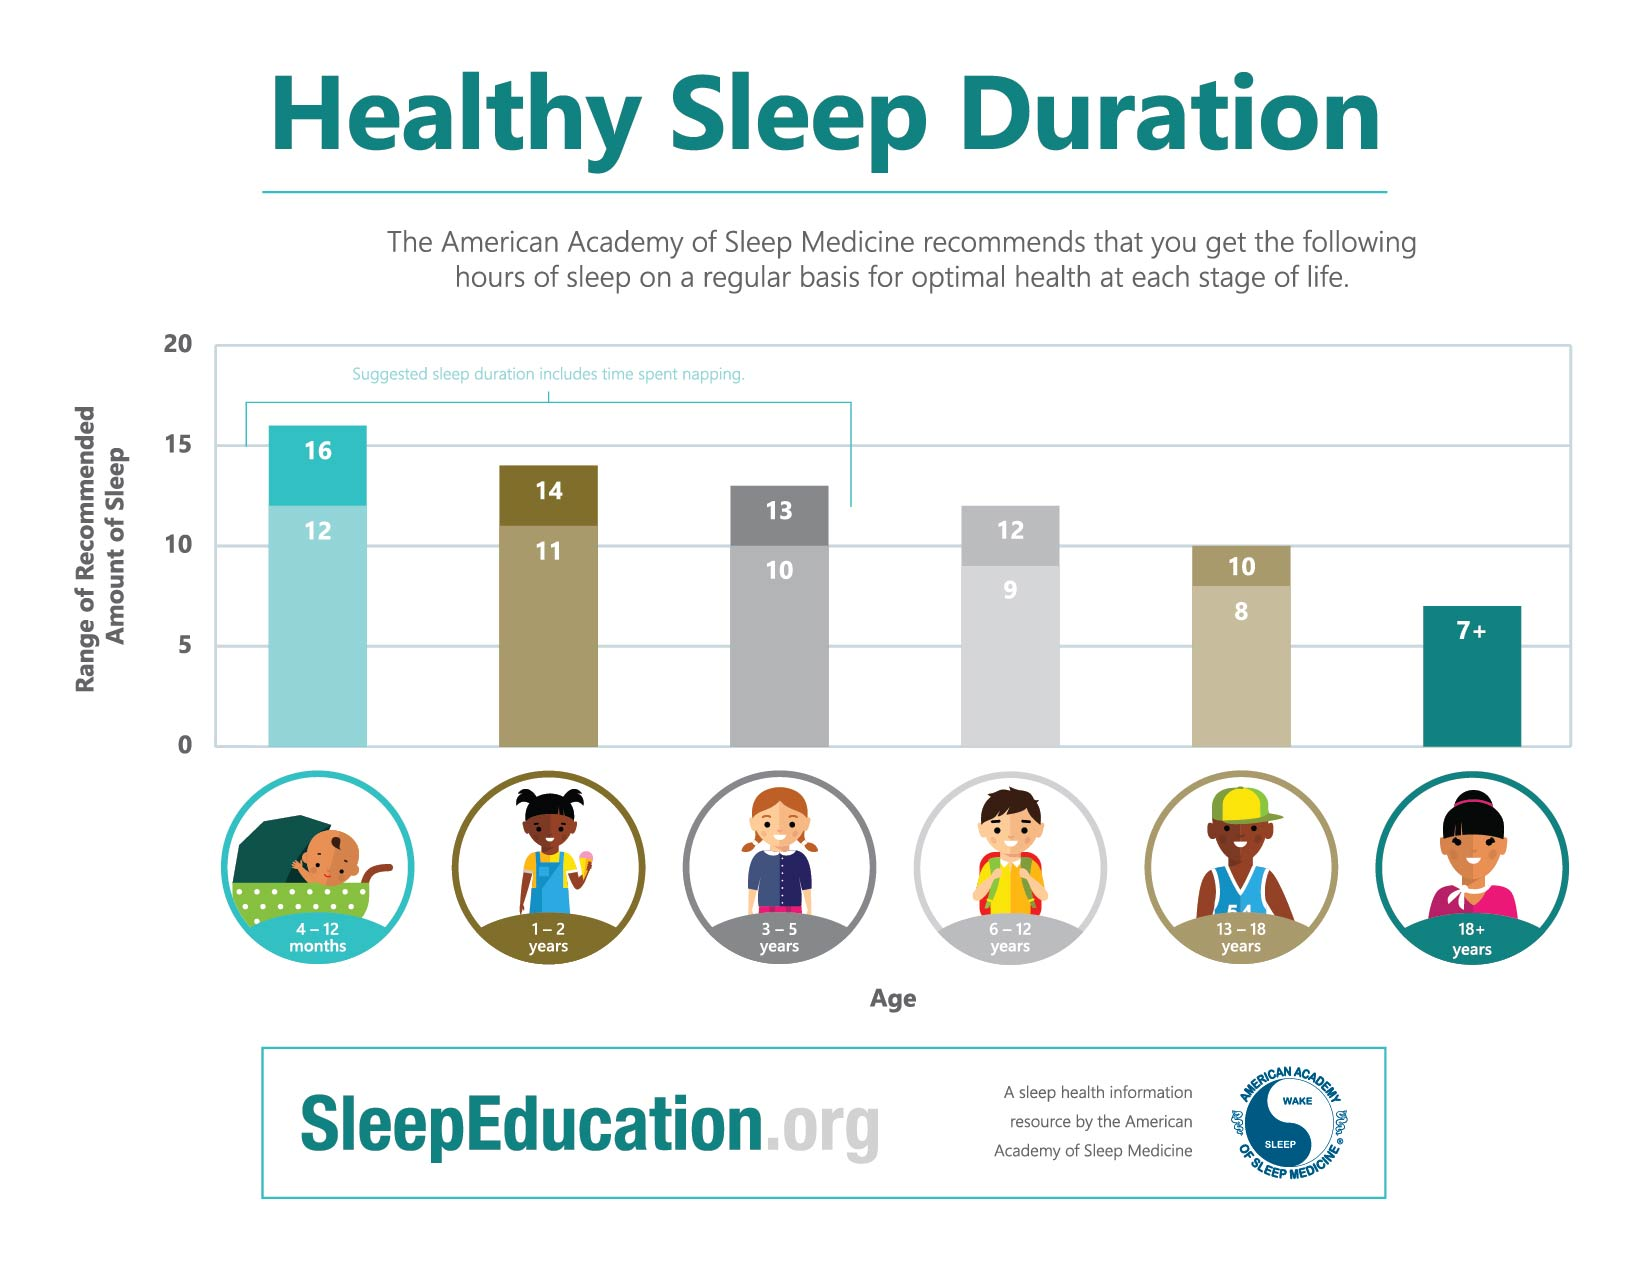 The healthy amount of hours of sleep you should get each night based on your age